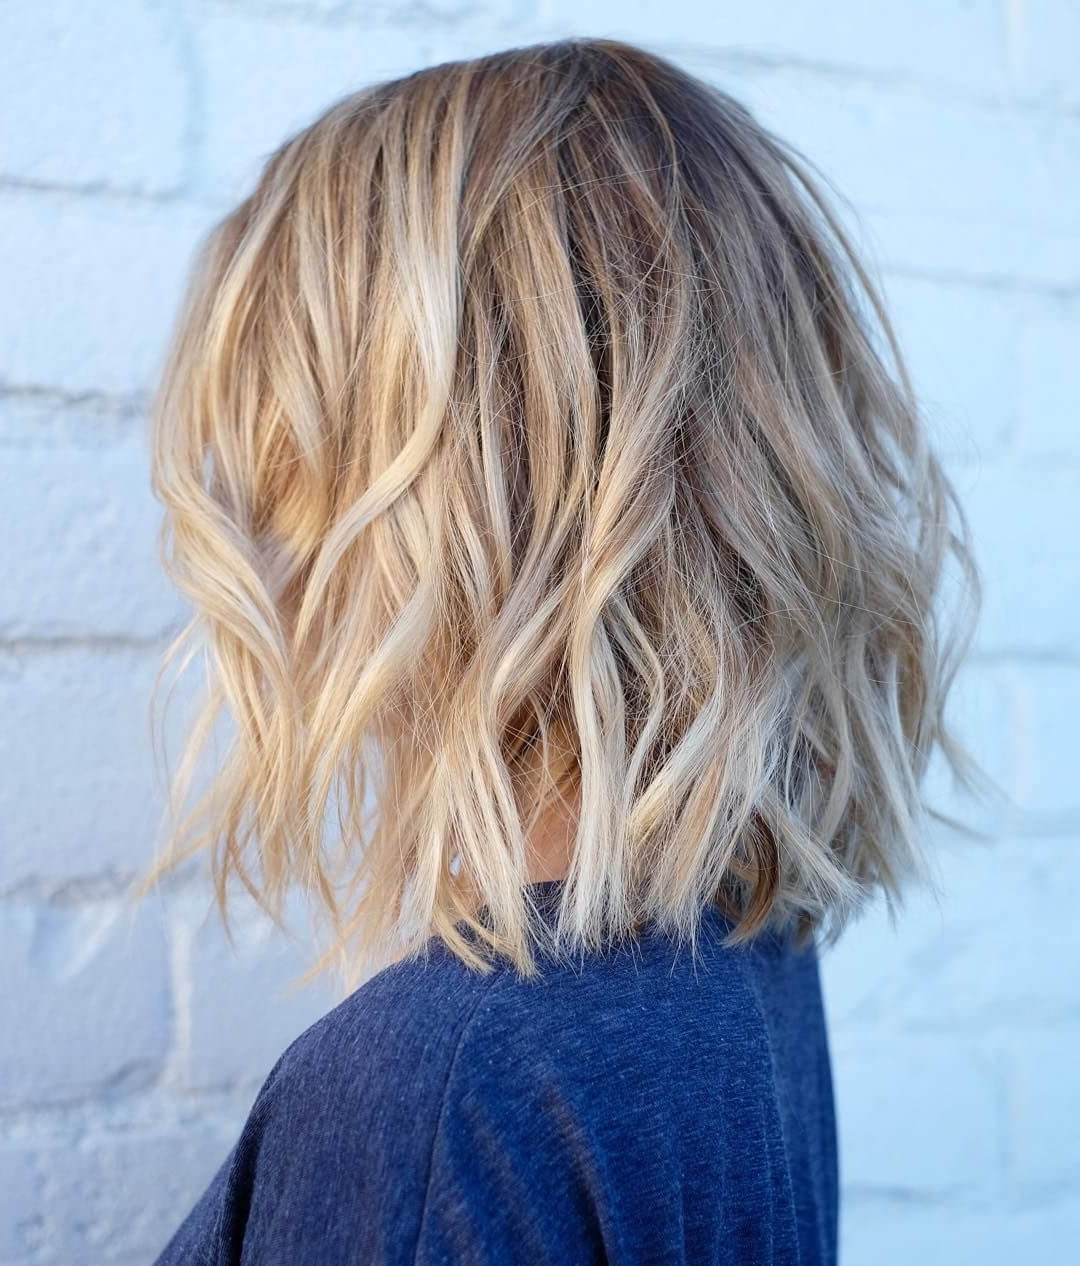 Most Recently Released All Over Cool Blonde Hairstyles For 50 Fresh Short Blonde Hair Ideas To Update Your Style In (View 10 of 20)